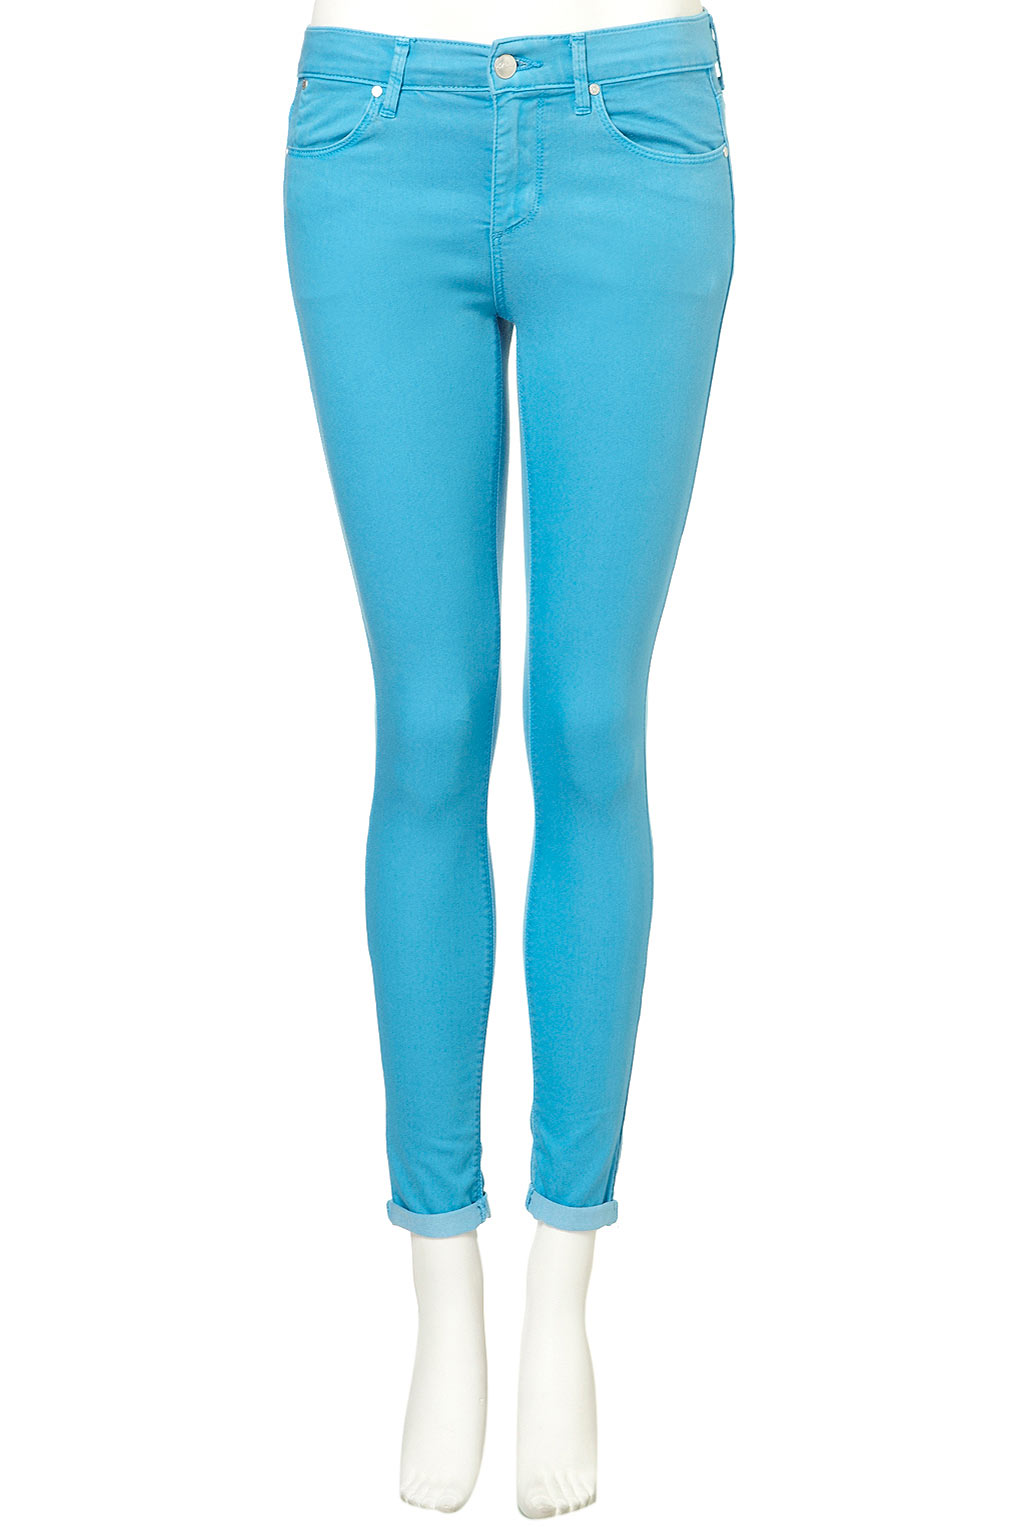 Topshop Turquoise Skinny Leigh Jeans in Blue | Lyst